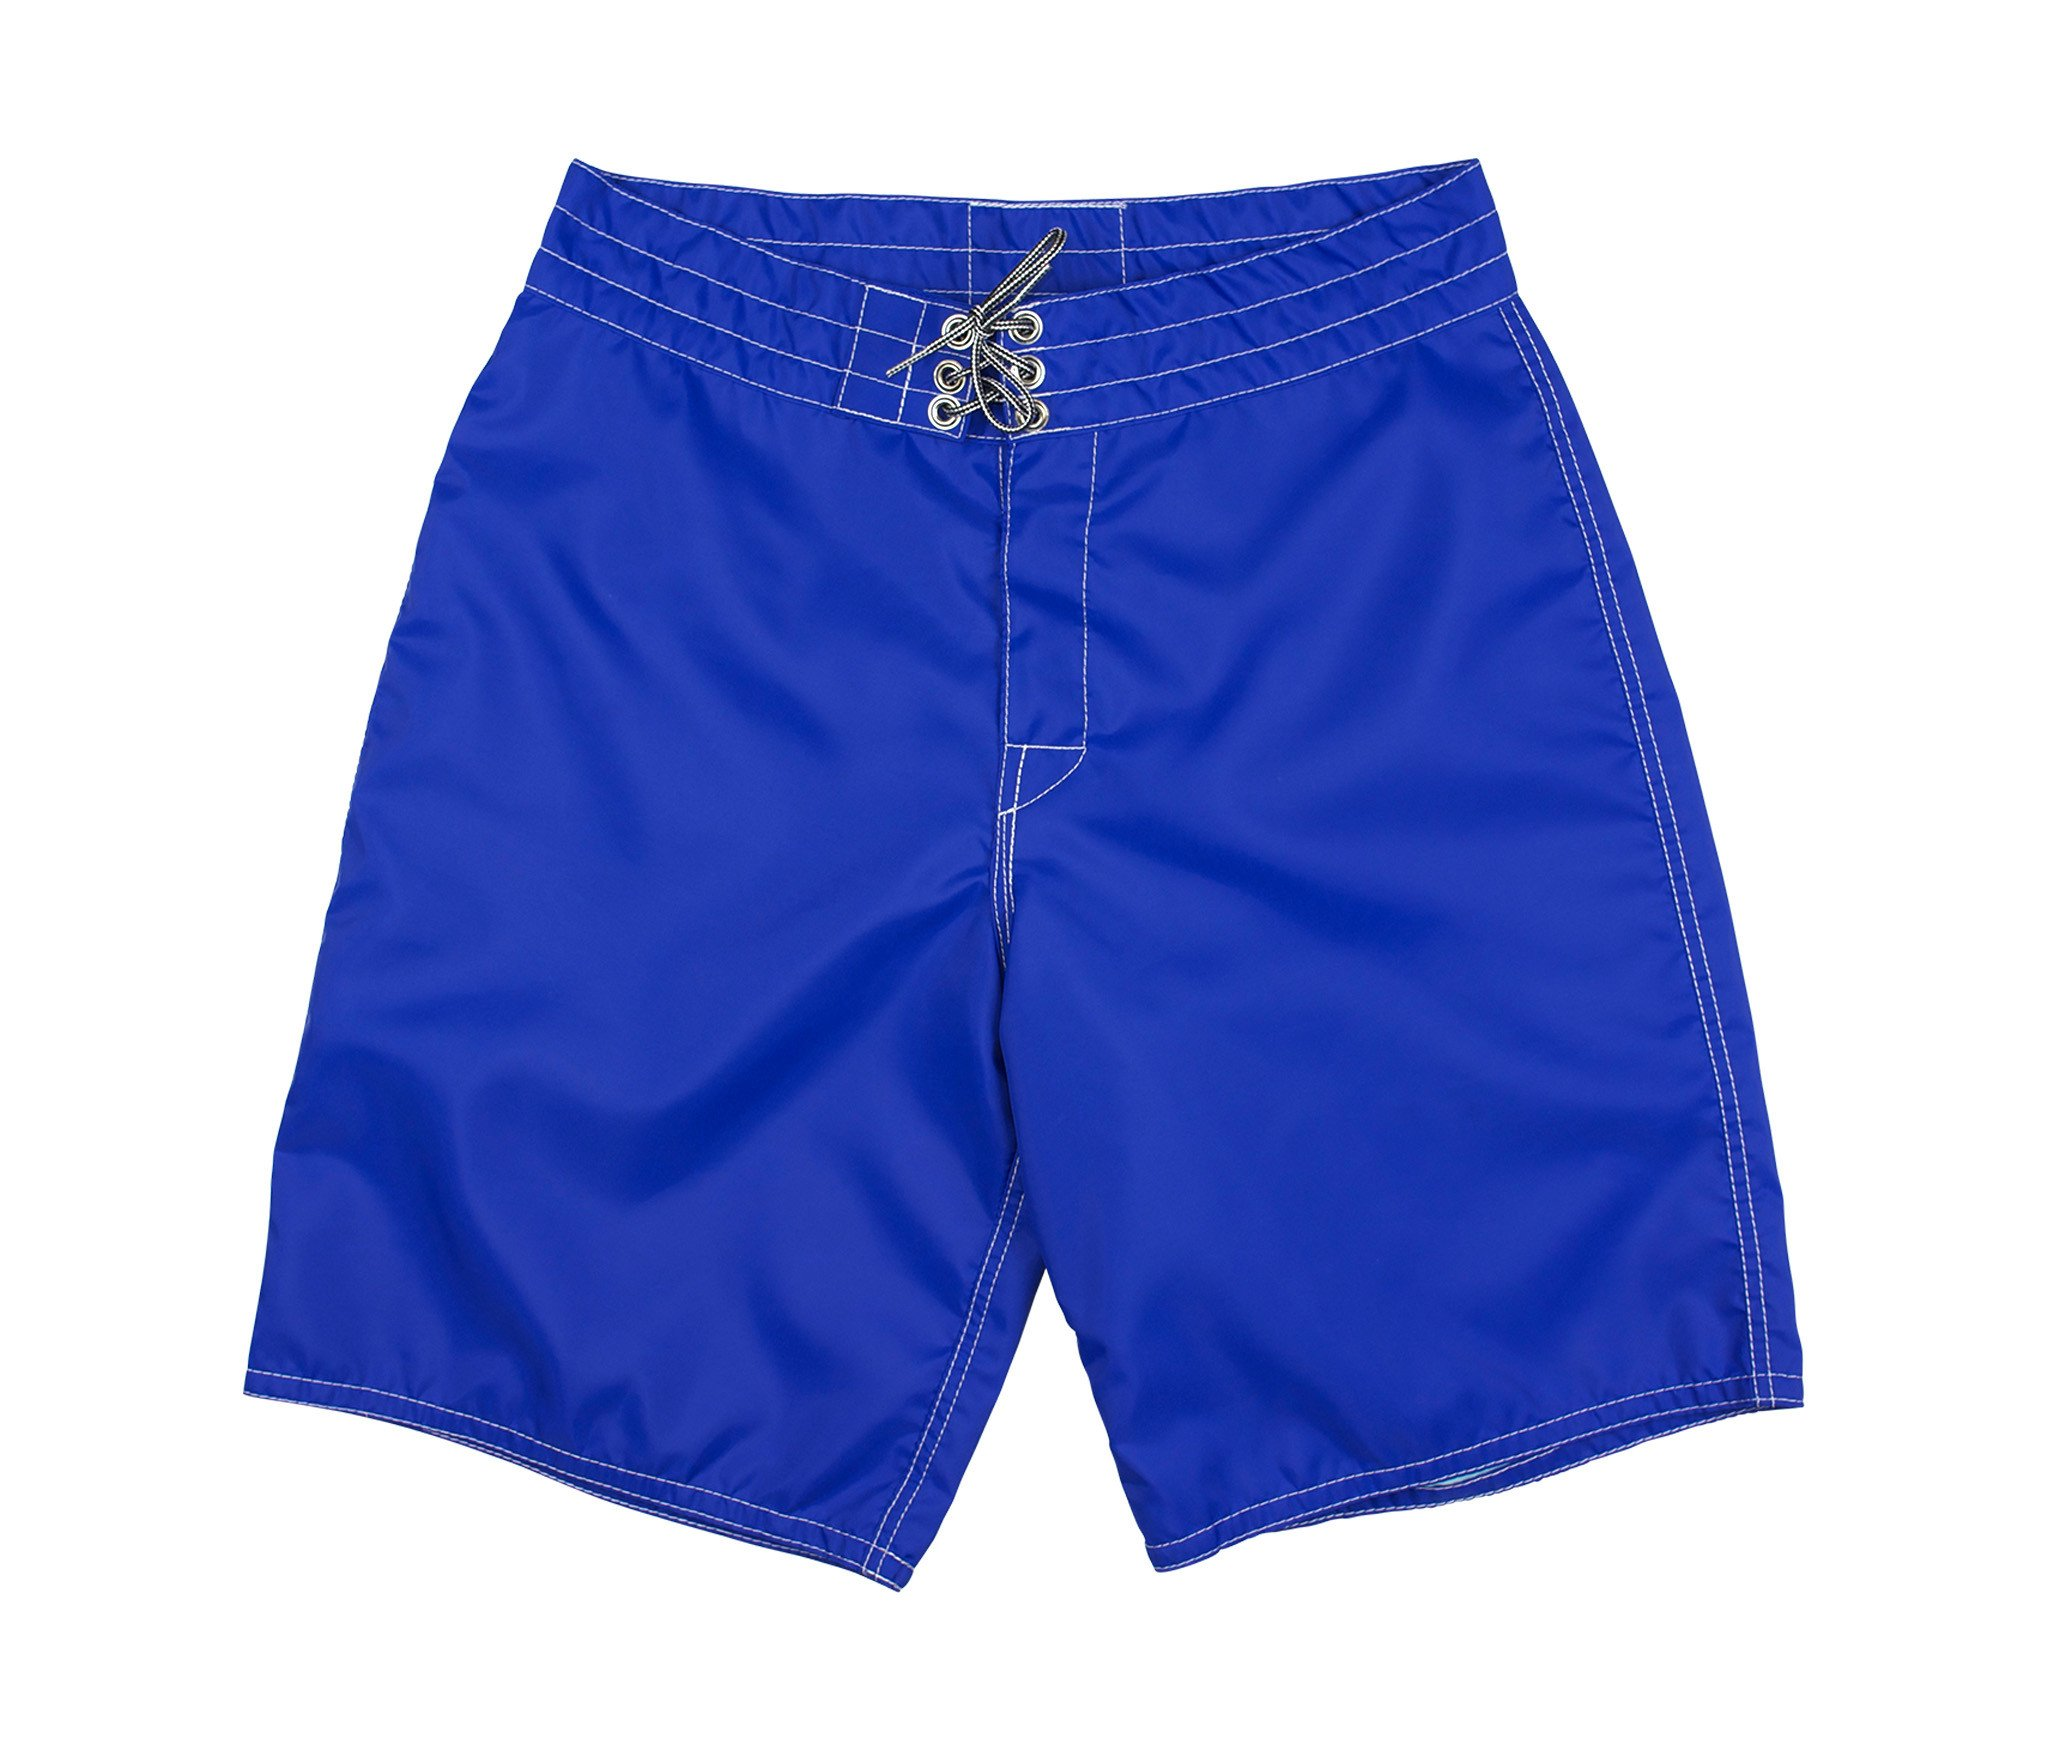 Birdwell Beach Britches Style 312 (Royal Blue, 31)